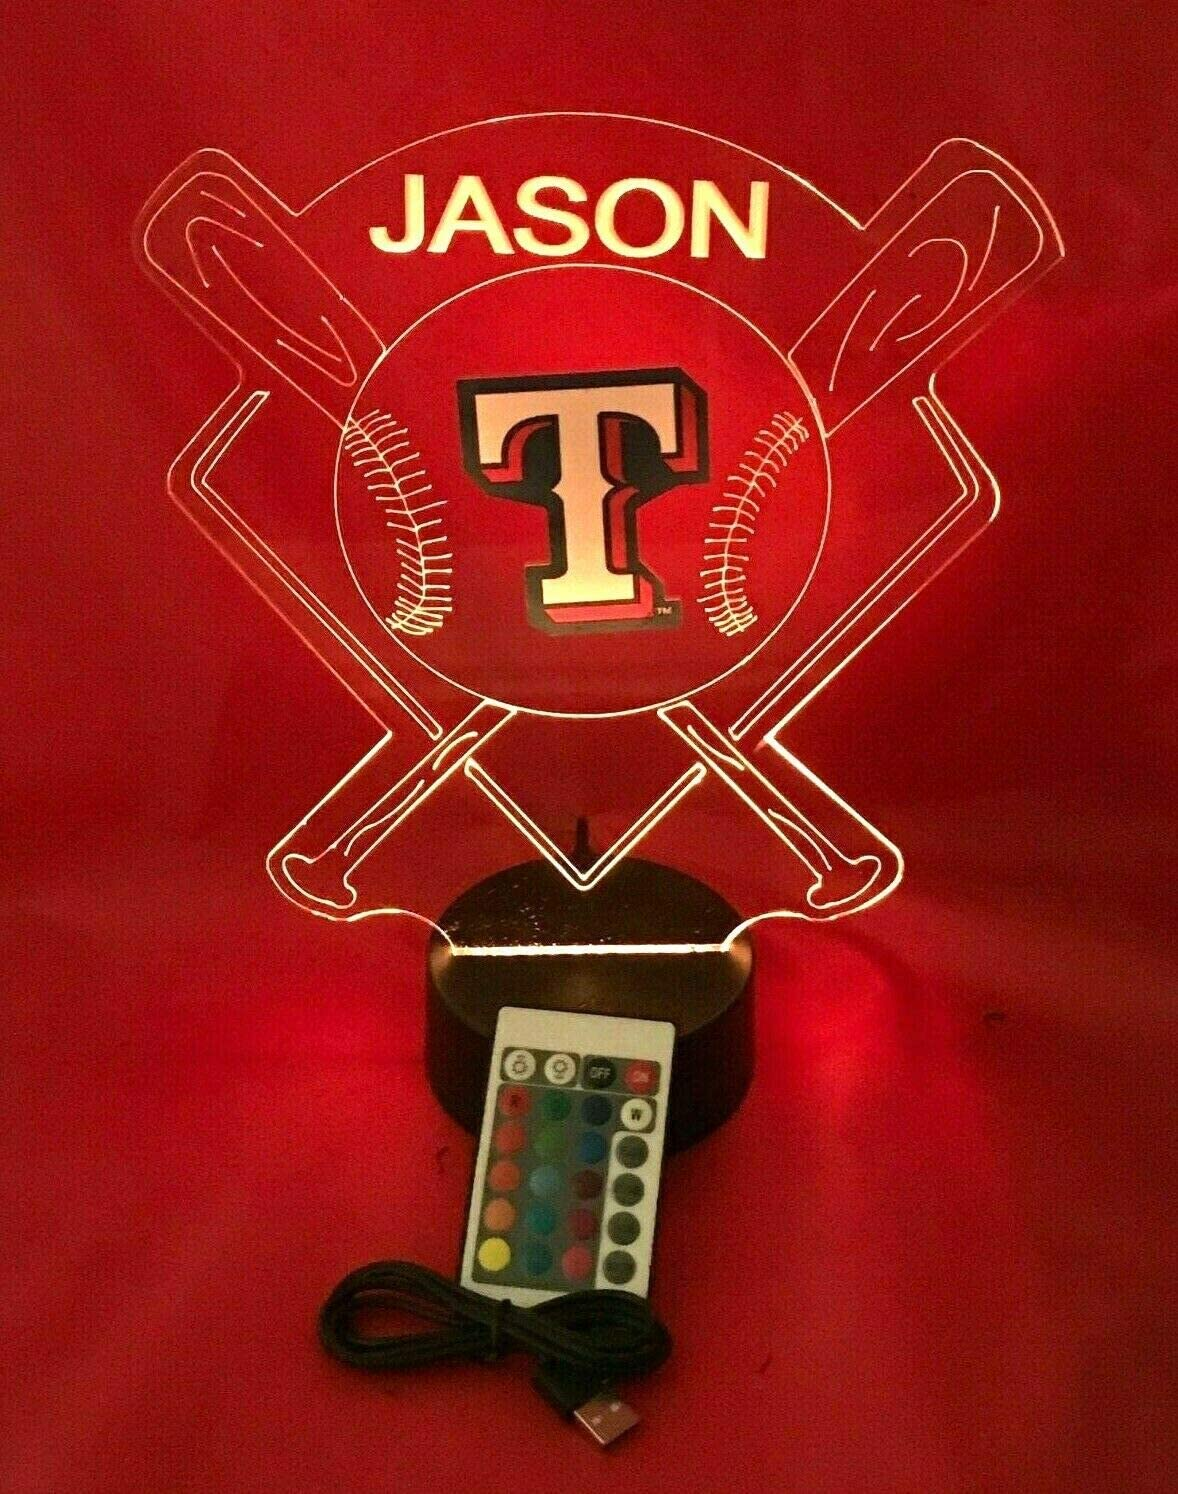 Baseball Night Light Up Lamp LED Lamp Personalized Handmade Stadium with Bats Free Personalization and Remote, Men Man Boys Girls Sports Gift, 16 Color Options, and Variations! (TX Rangers)